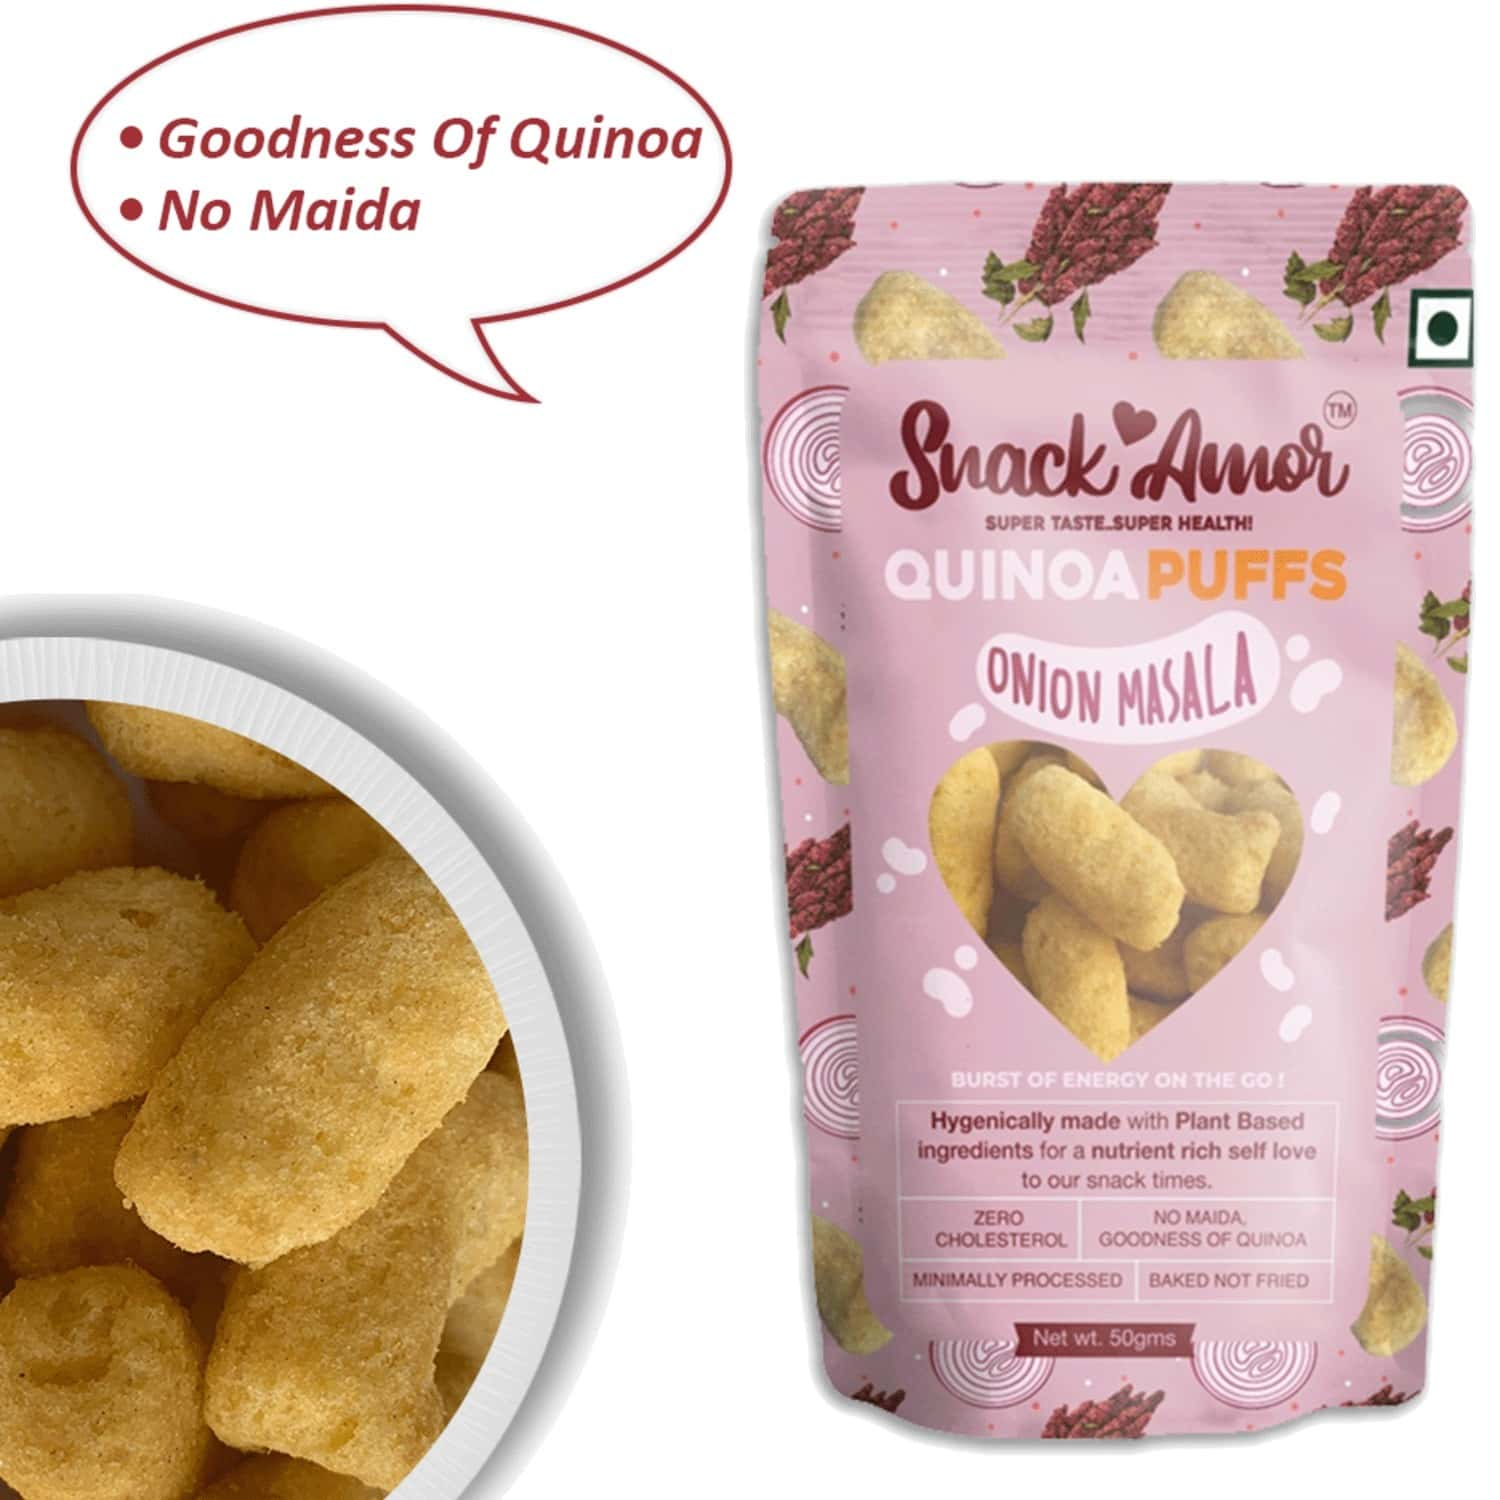 Snack Amor Quinoa Puffs Onion Masala-nutritional Snacks - Pack Of 1 X 50g